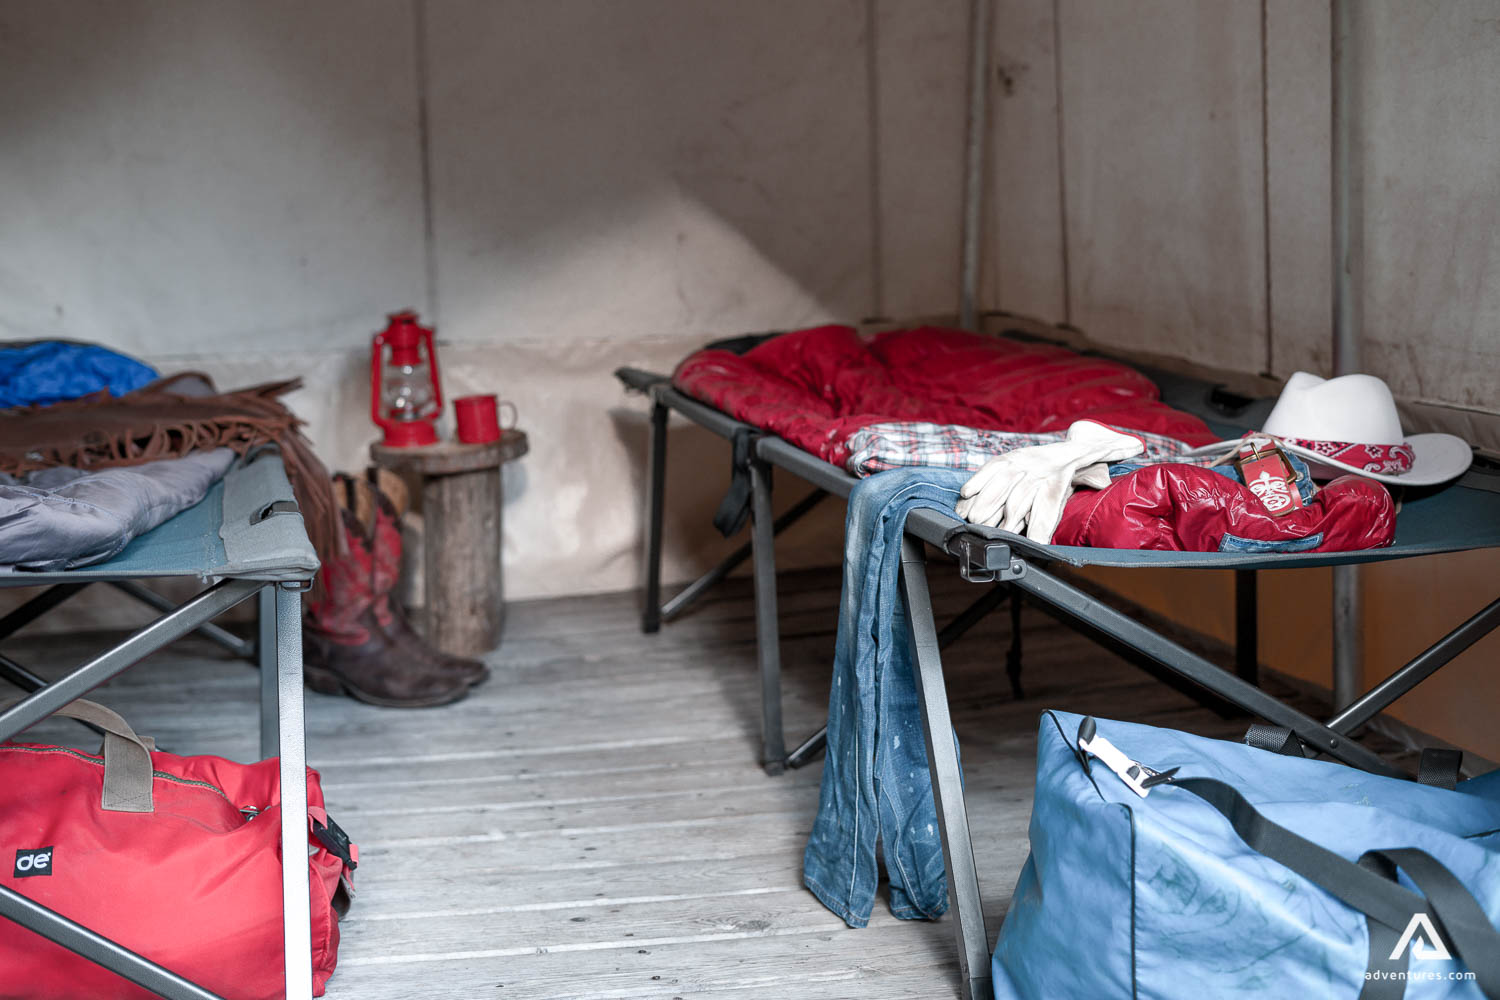 Beds inside tents